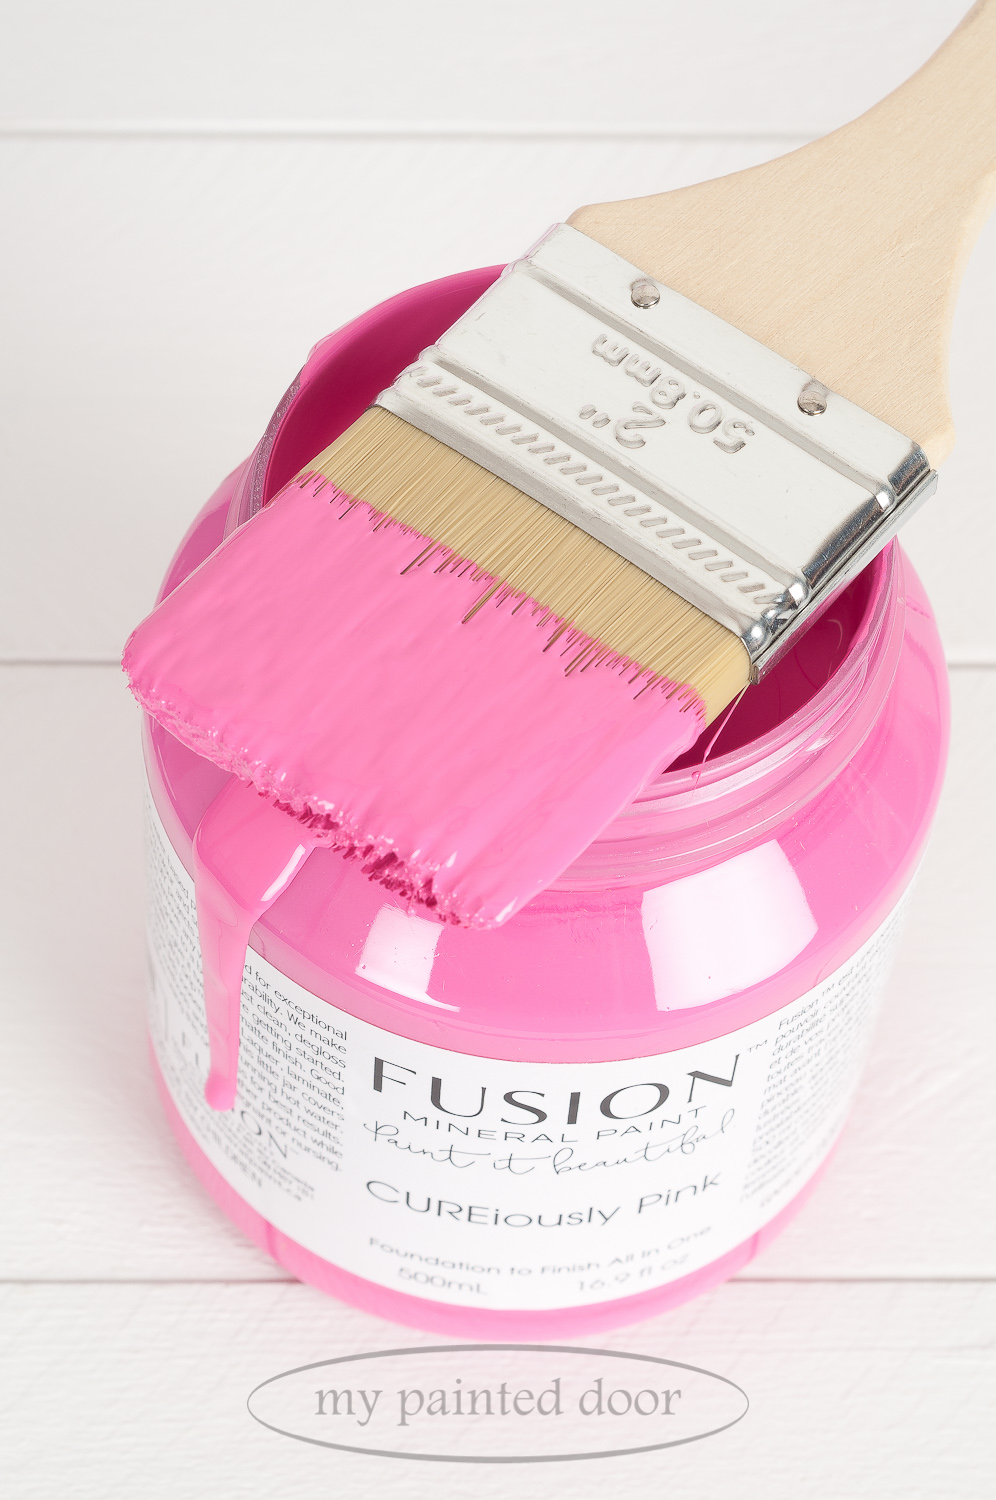 Fusion Mineral Paint CUREiously Pink. Available online at My Painted Door.